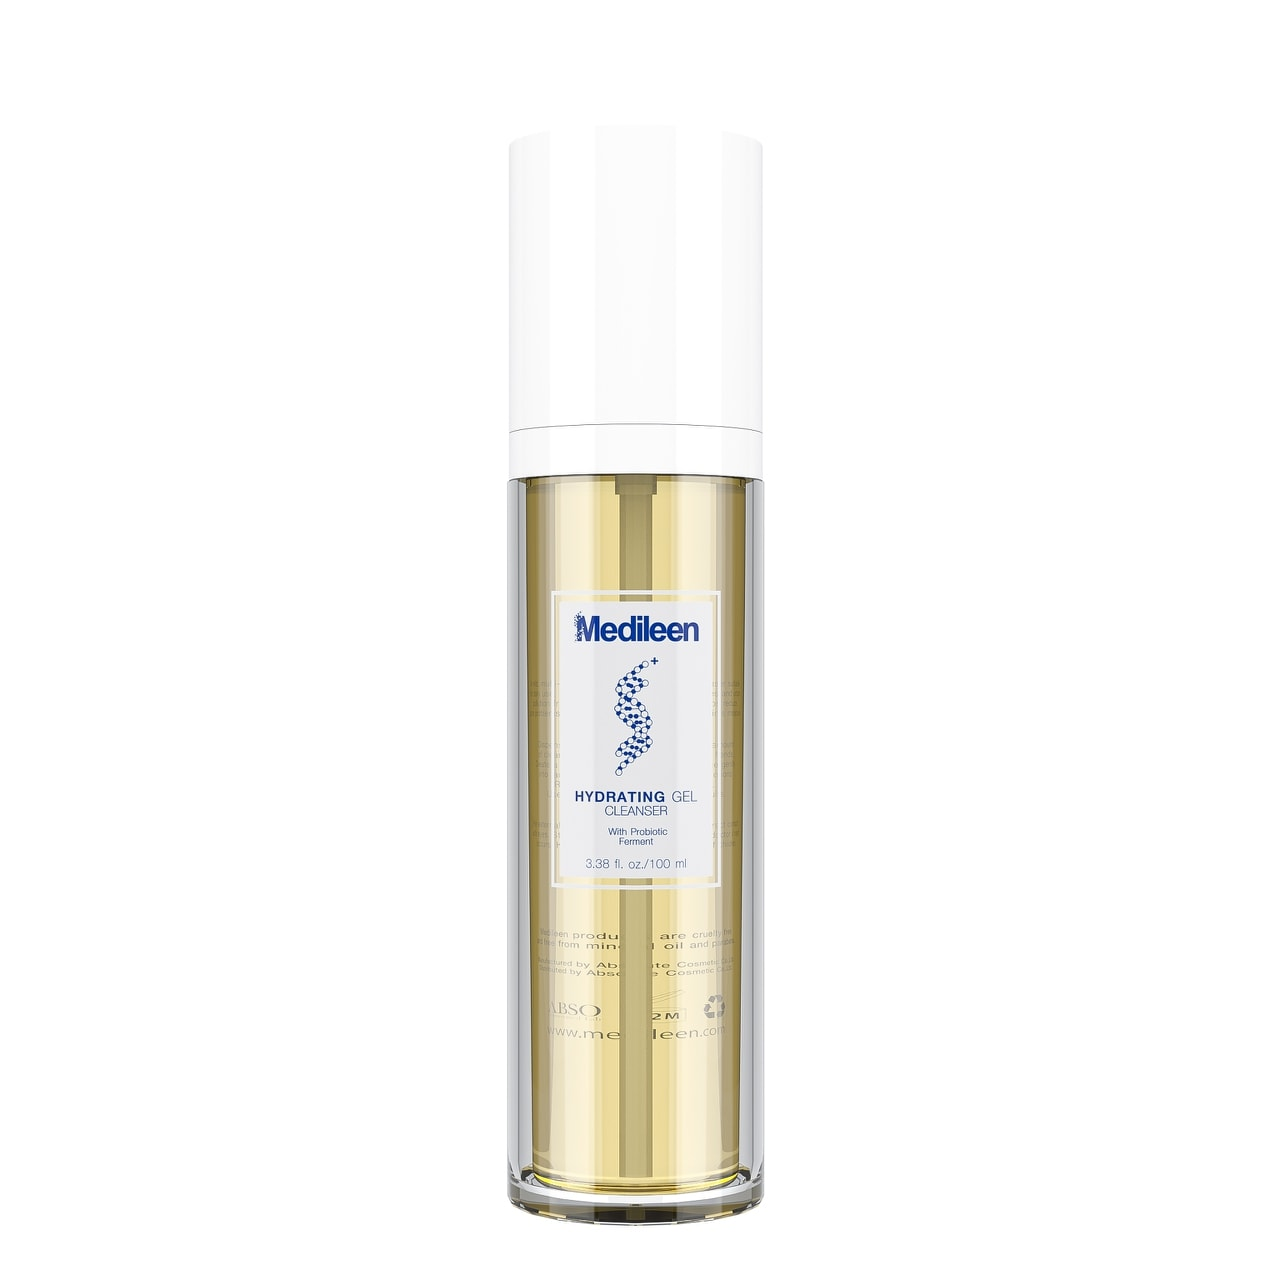 Medileen Hydrating Gel Cleanser